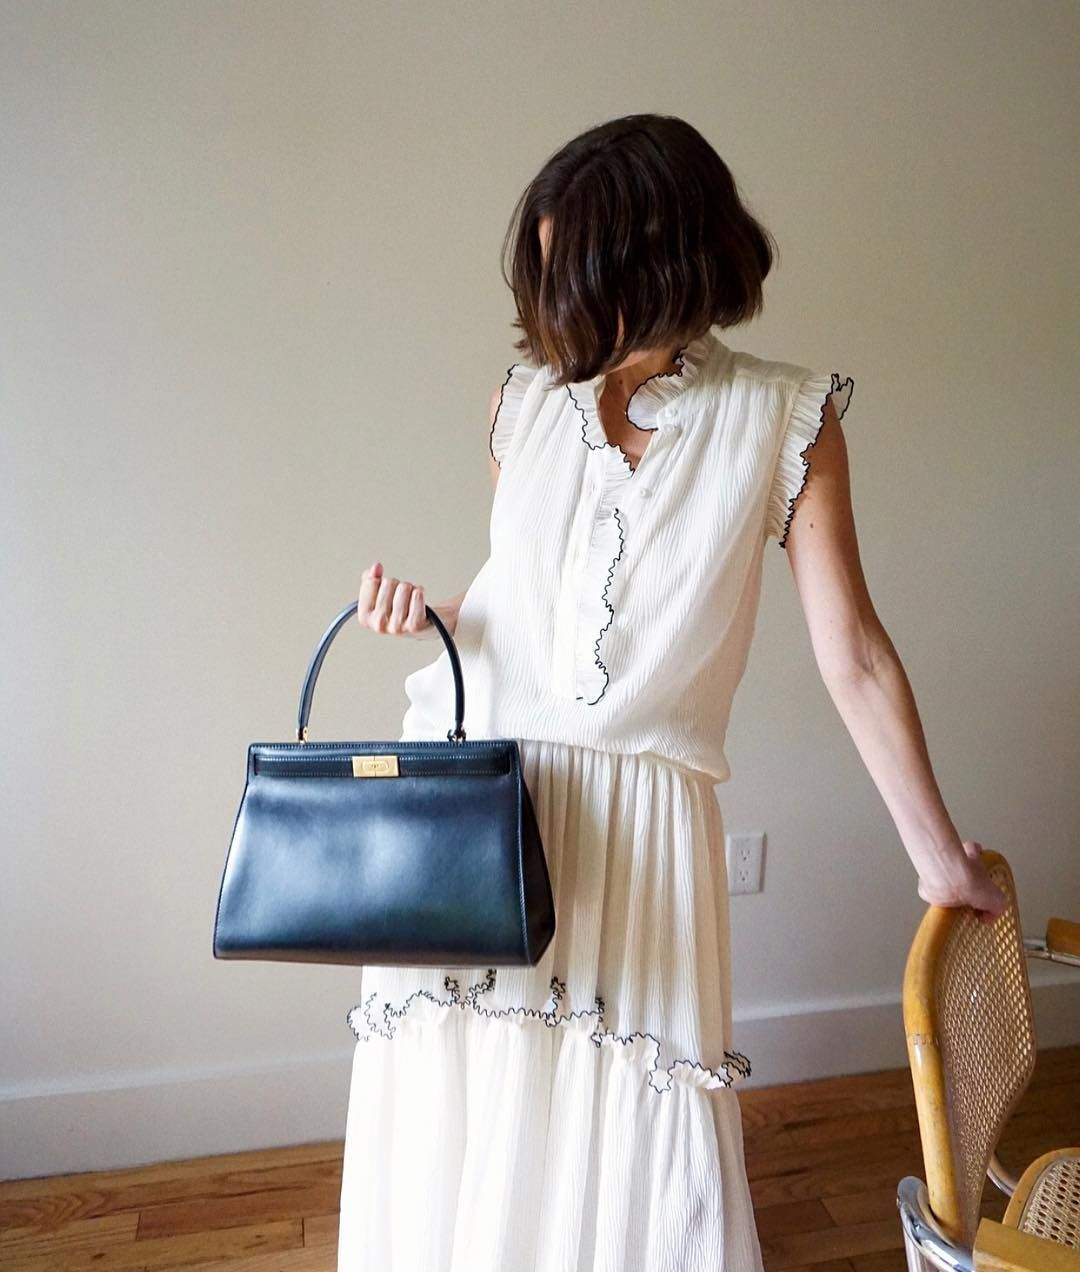 bccb8c8e925  lifeofboheme in our Meredith dress and Lee Radziwill satchel  torystories